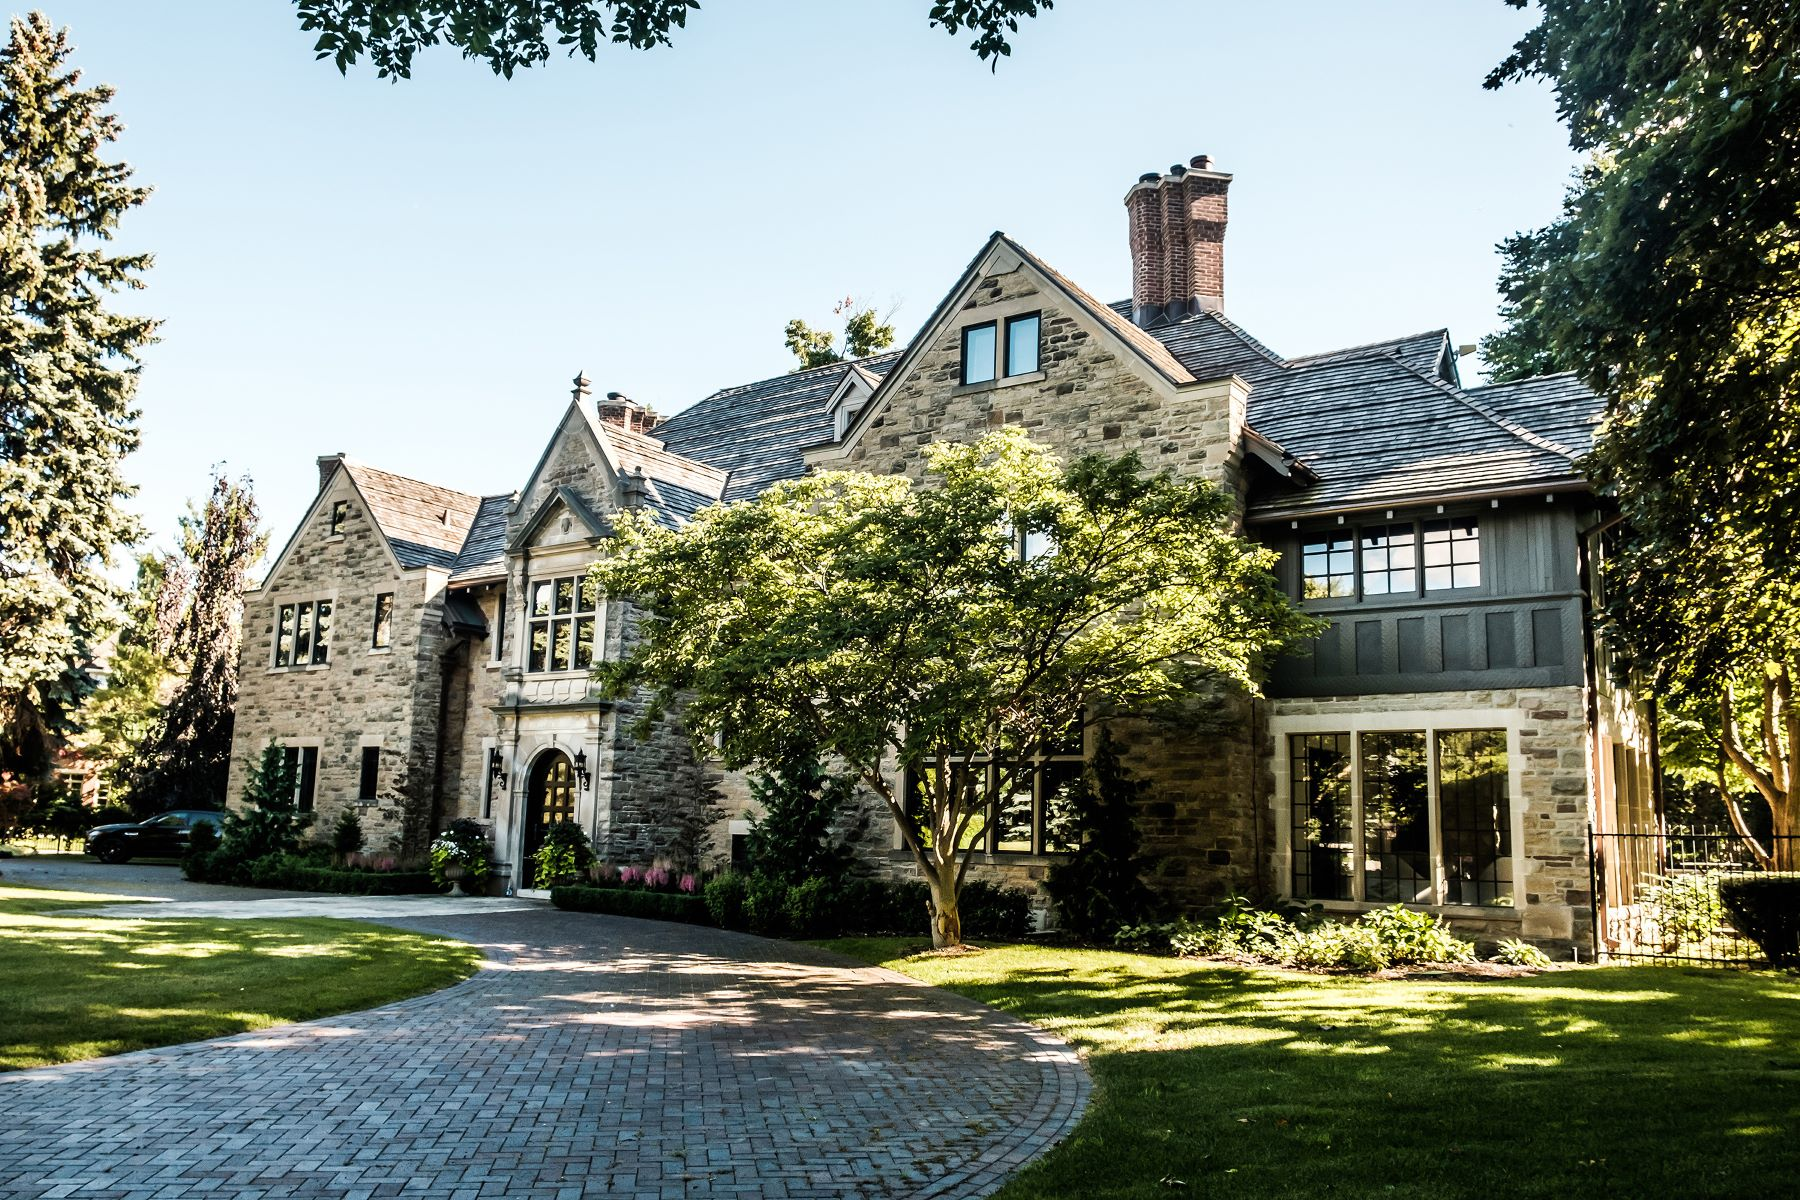 Single Family Home for Sale at Magnificent stone mansion 15 Oakley Place Toronto, Ontario M2P 2G3 Canada